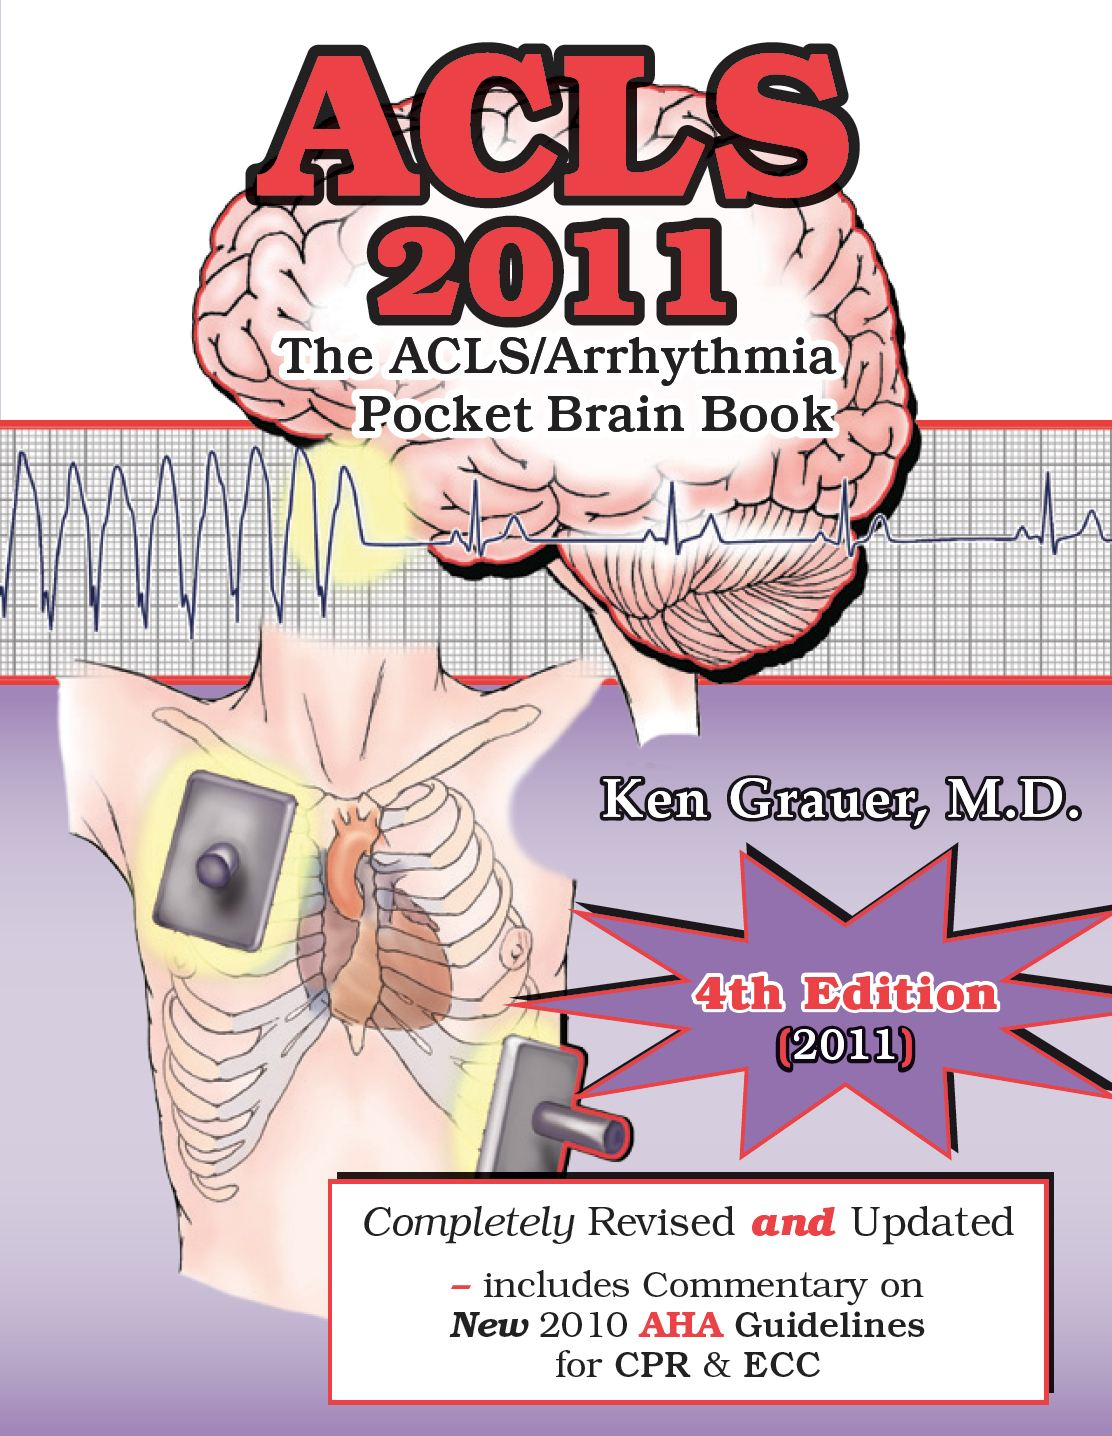 ACLS 2011 - Pocket Brain